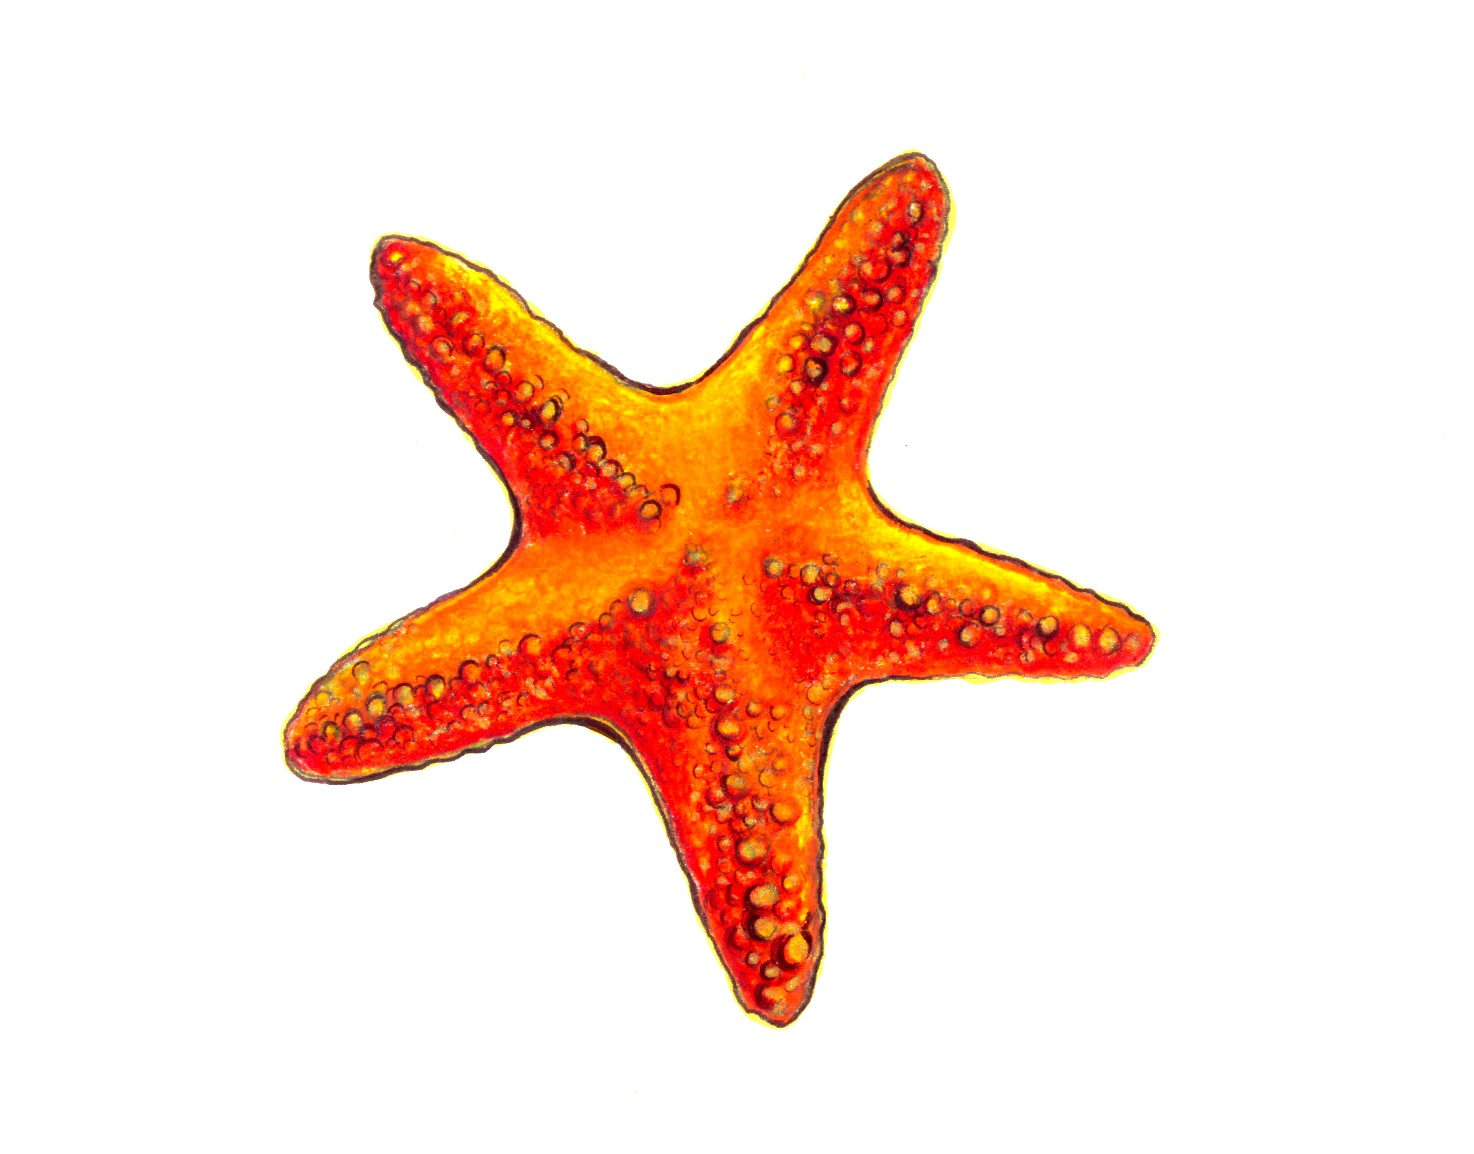 Uncategorized Star Fish Drawing december 9 2011 starfish a drawing day for year starfish